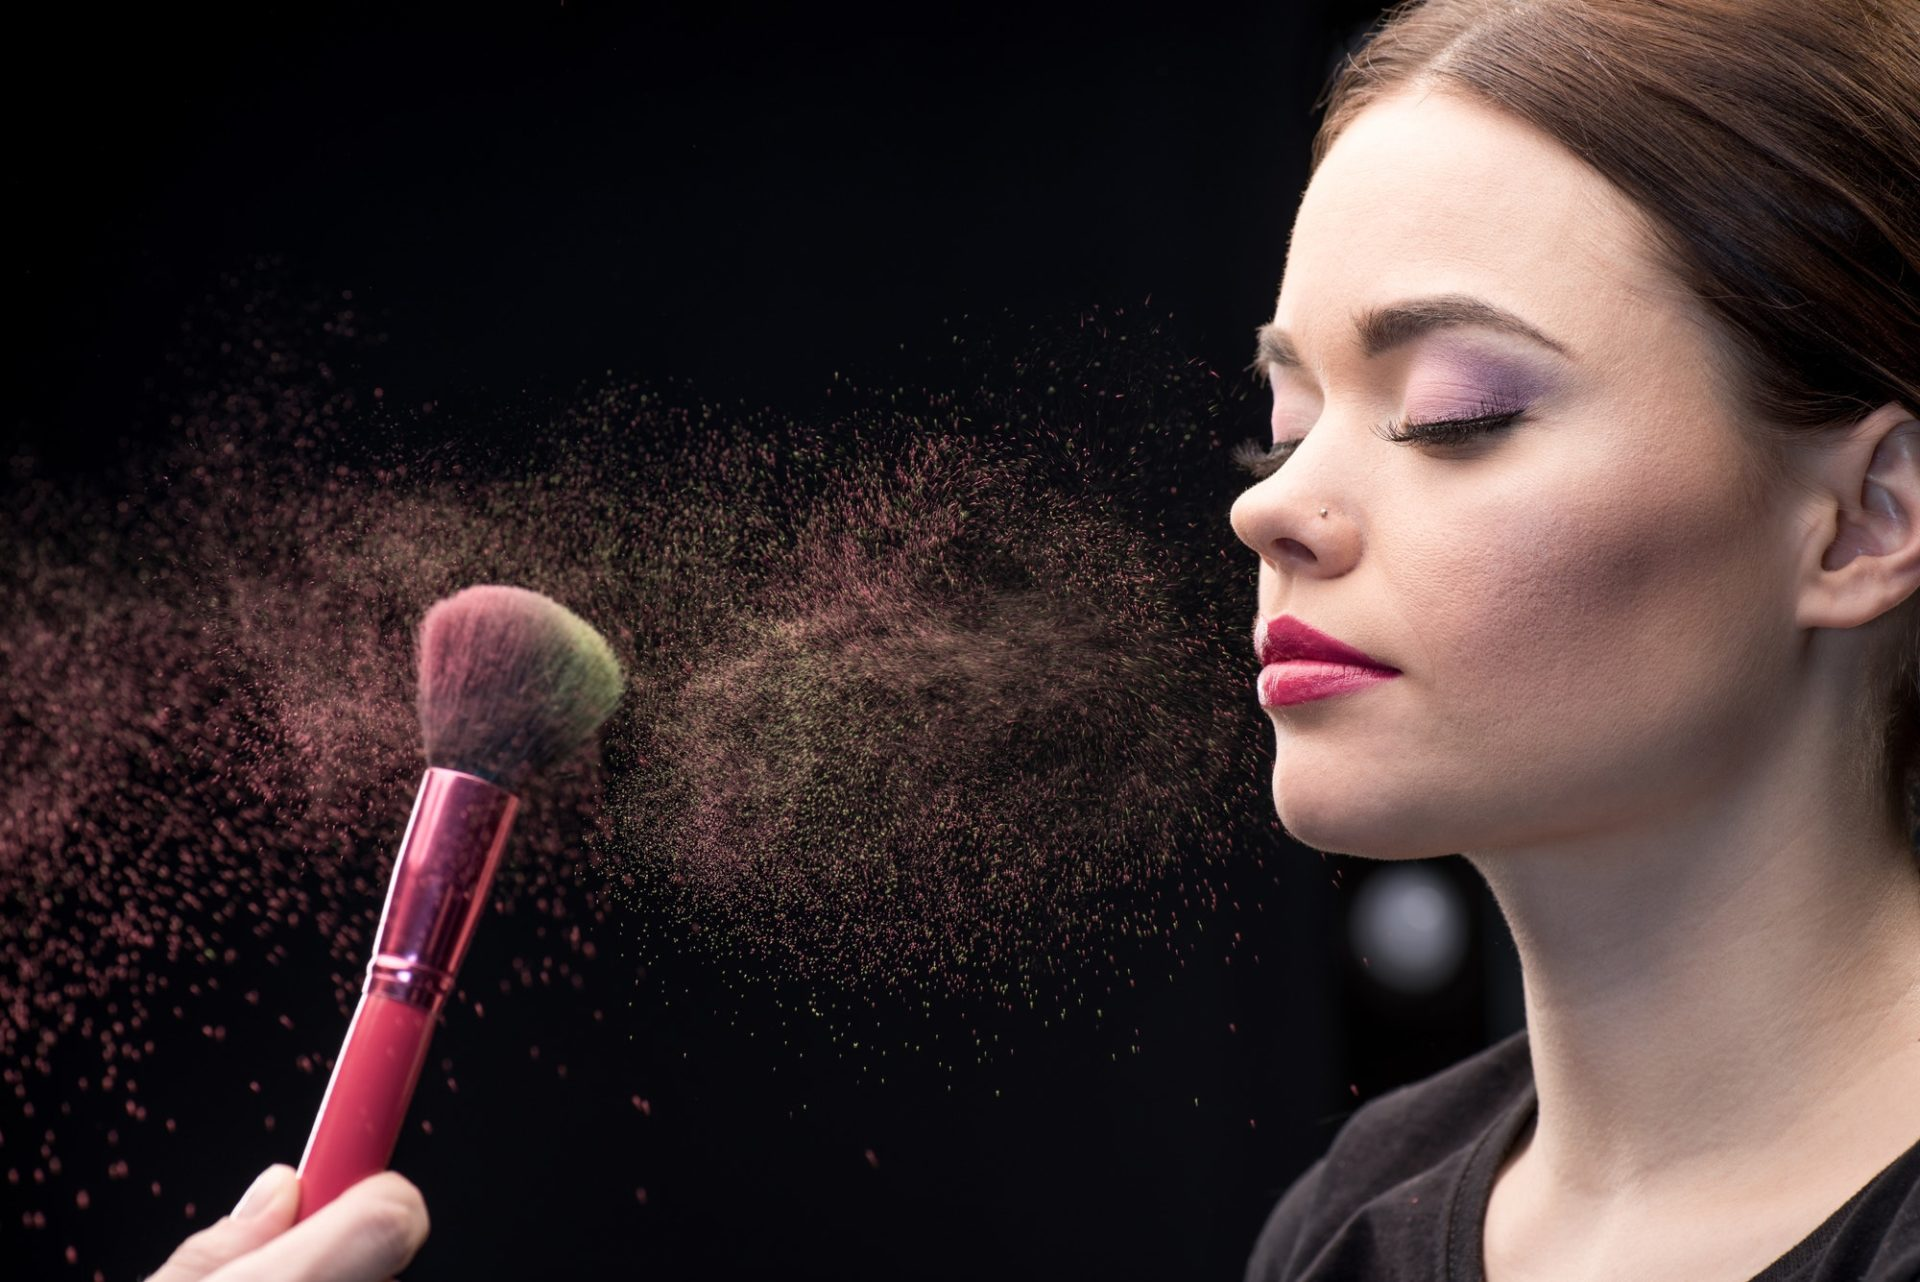 make-up-artist-sprinkling-model-s-face-with-powder-with-help-of-brush-on-black.jpg